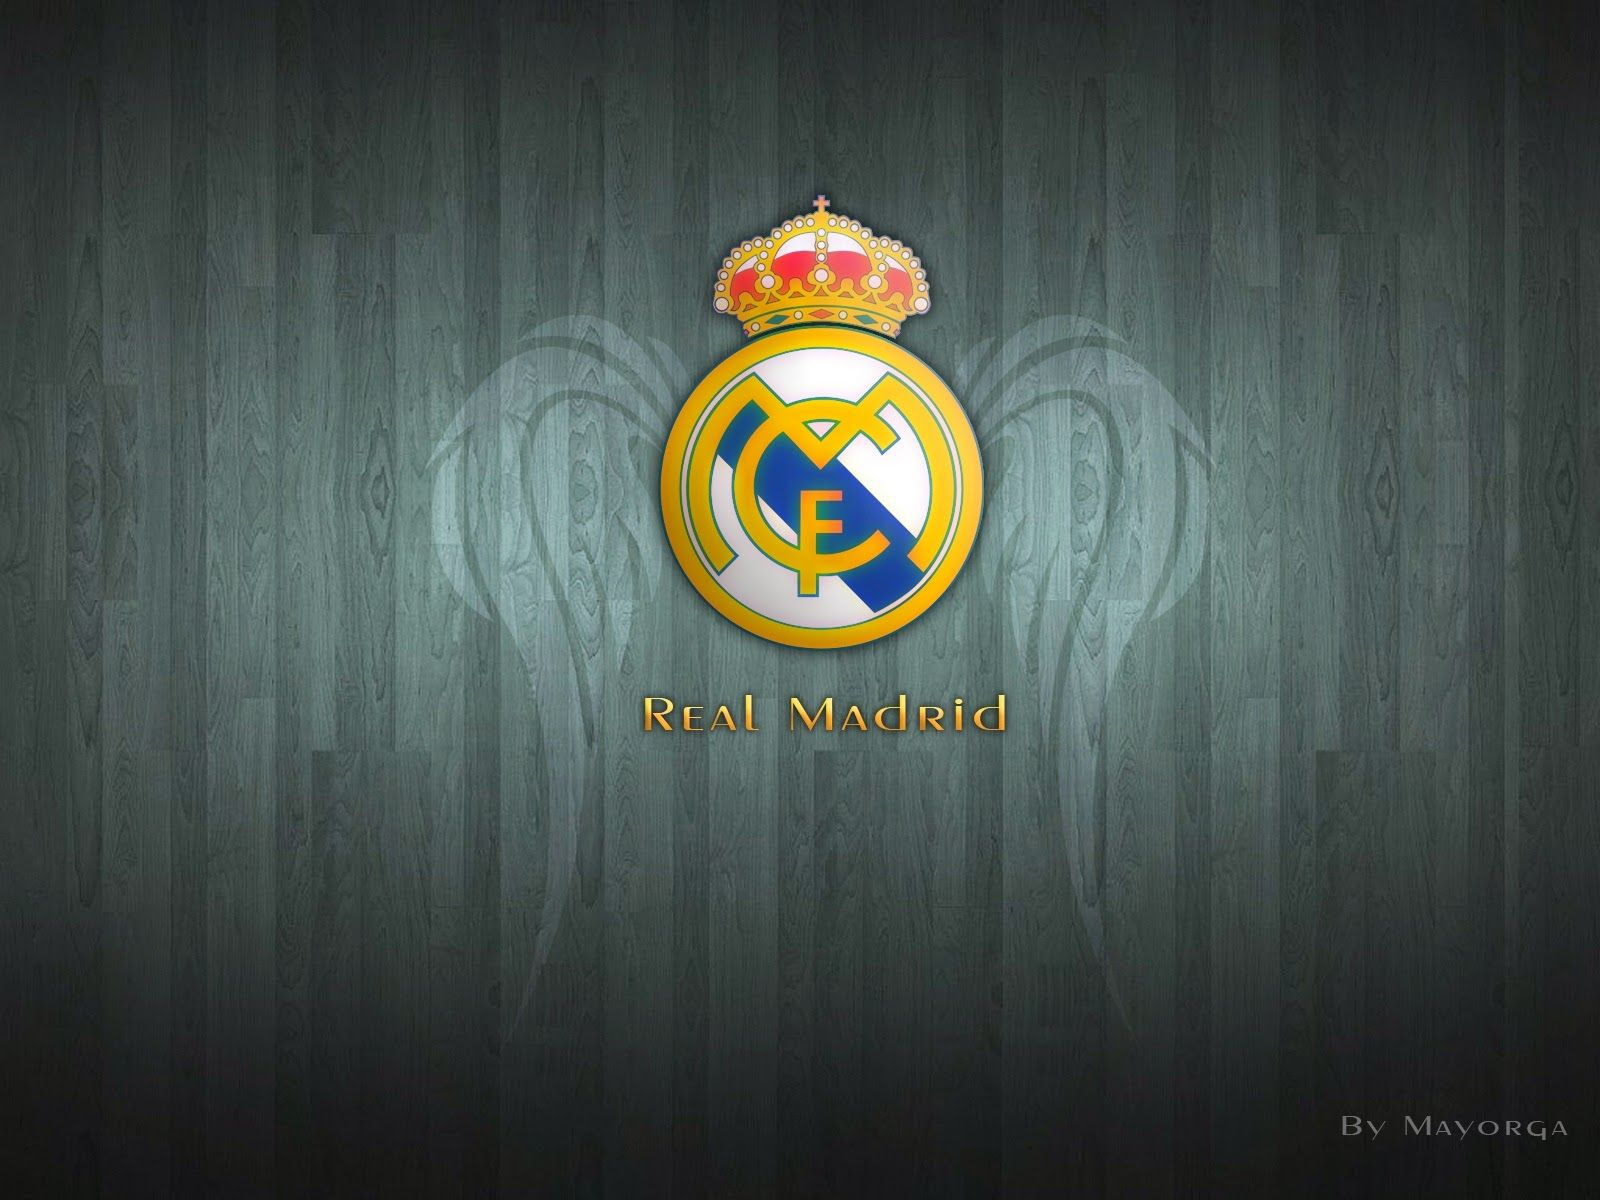 Real Madrid Live Wallpaper for Android - Download | Images Wallpapers | Real madrid wallpapers ...